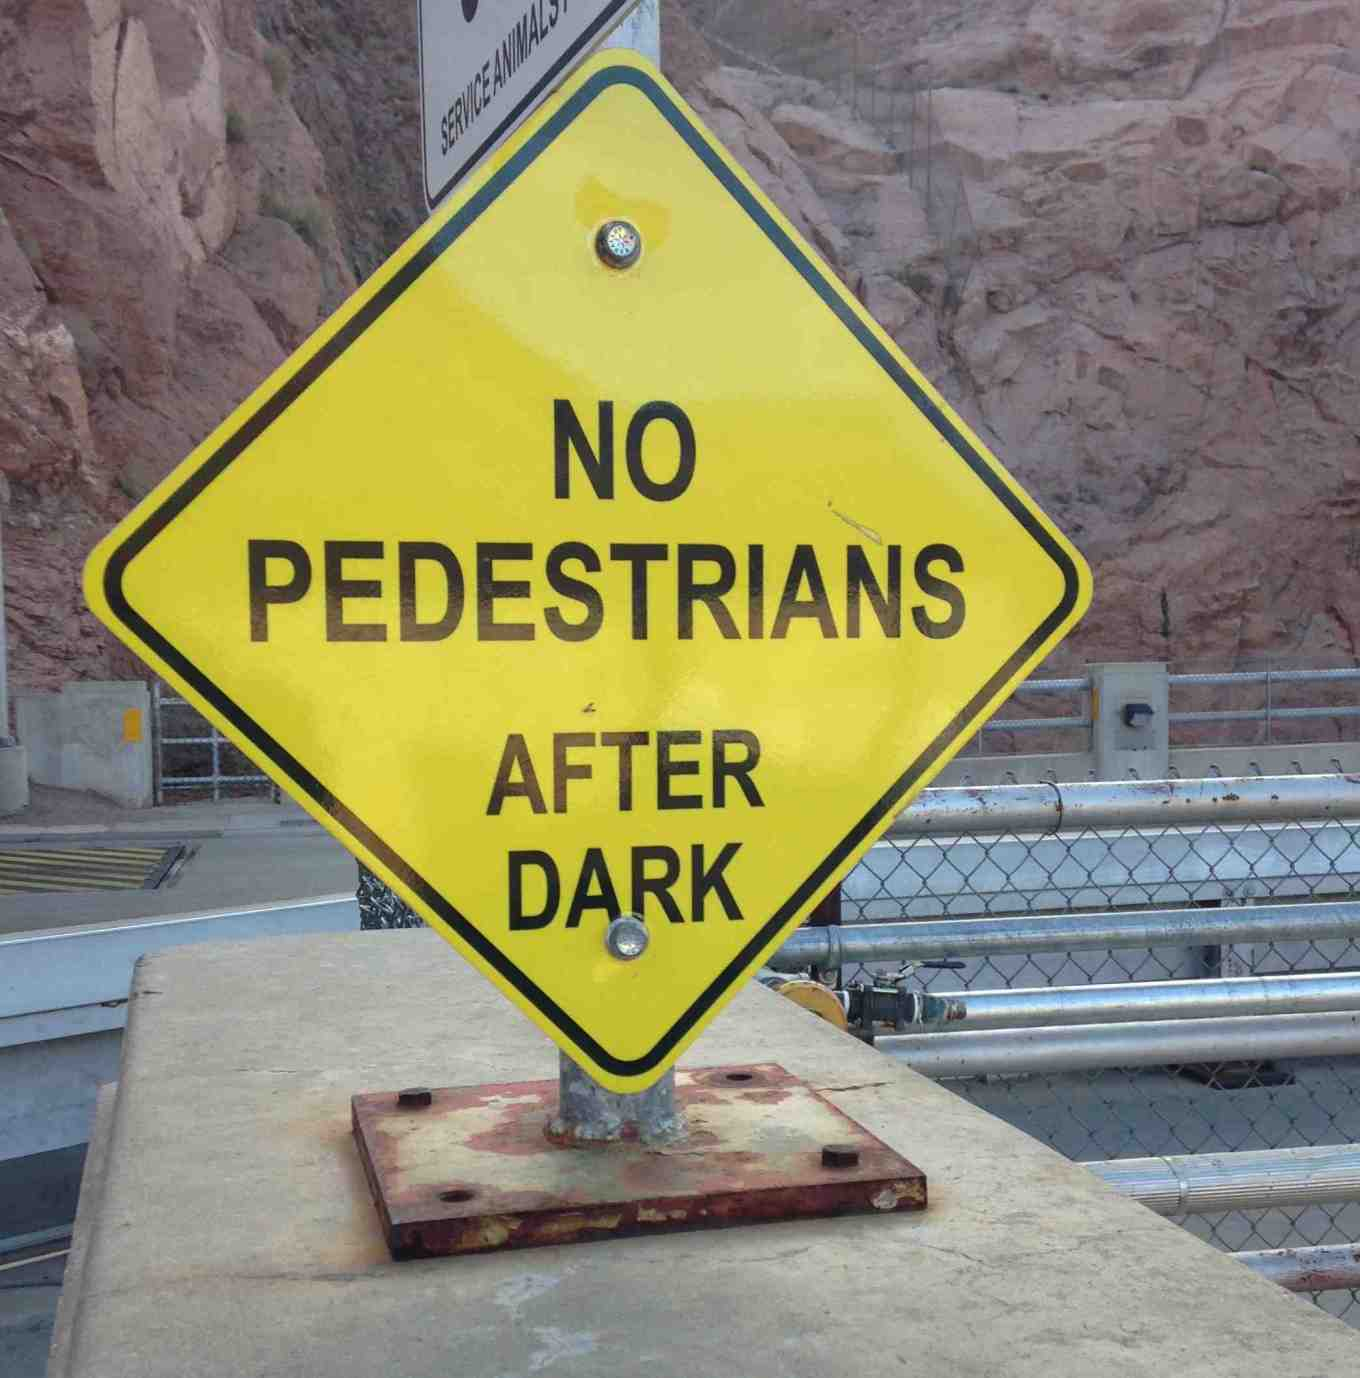 NO PEDESTRIANS AFTER DARK